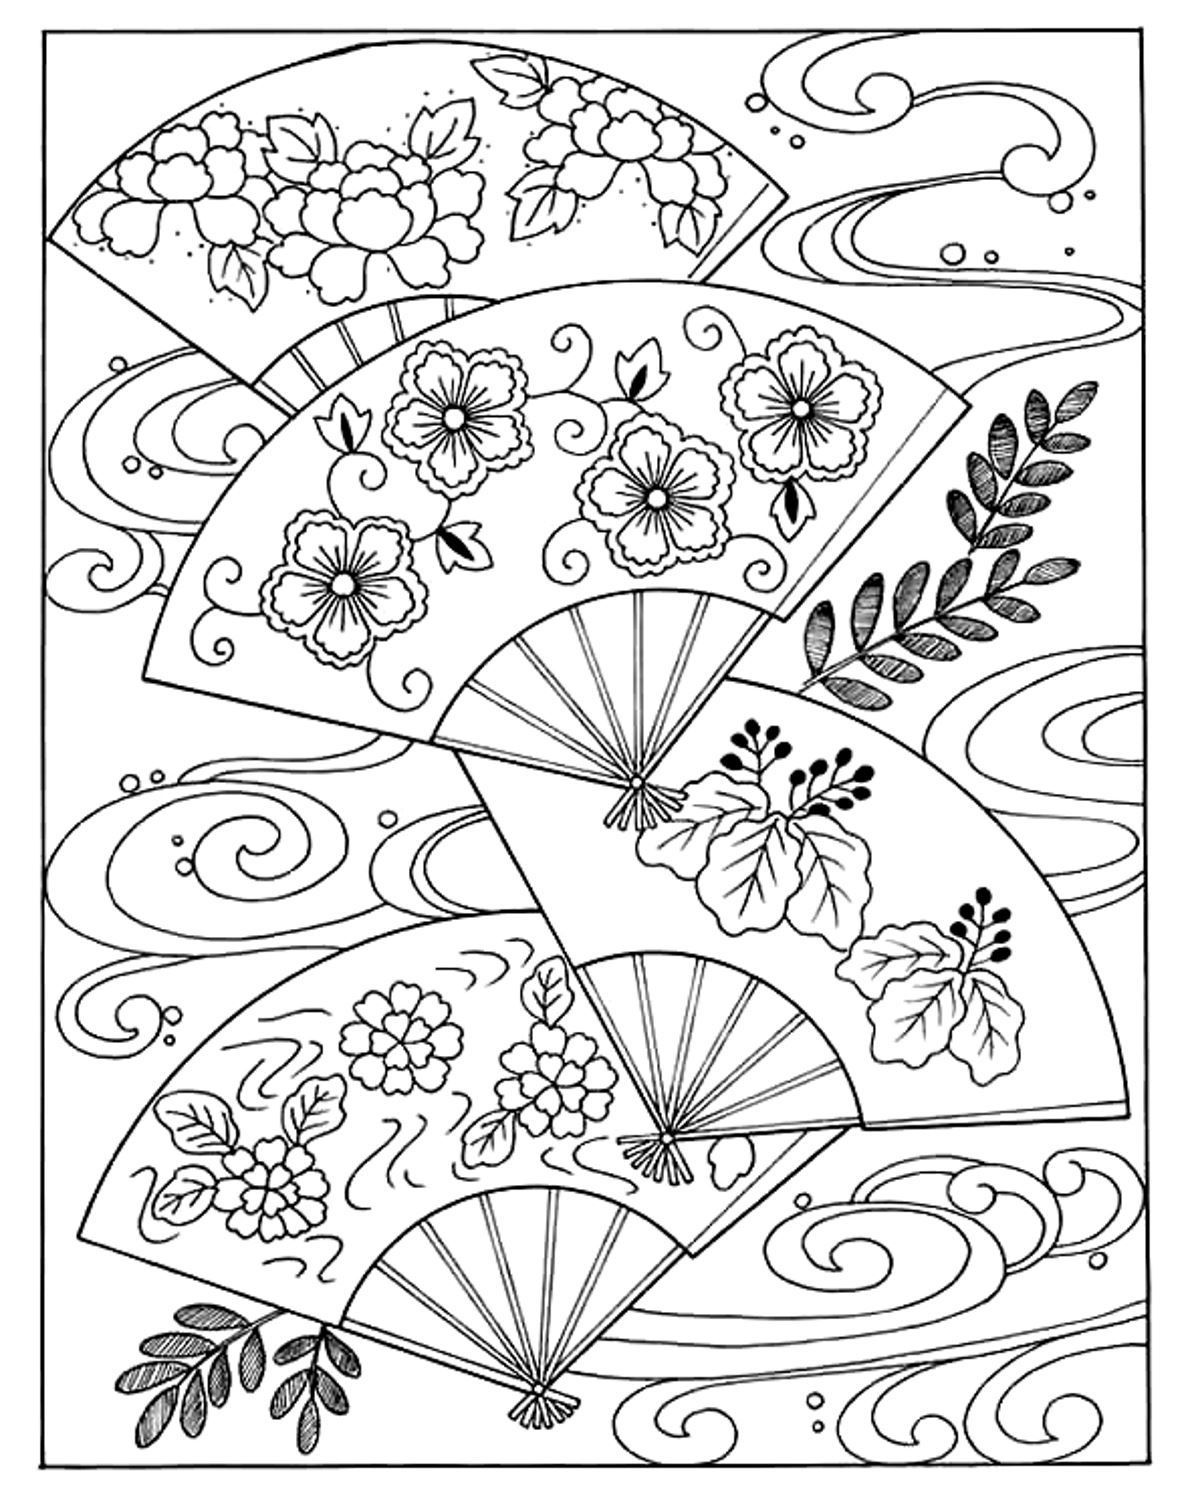 Japanese Coloring Book Pages. Free coloring page japanese hand fan